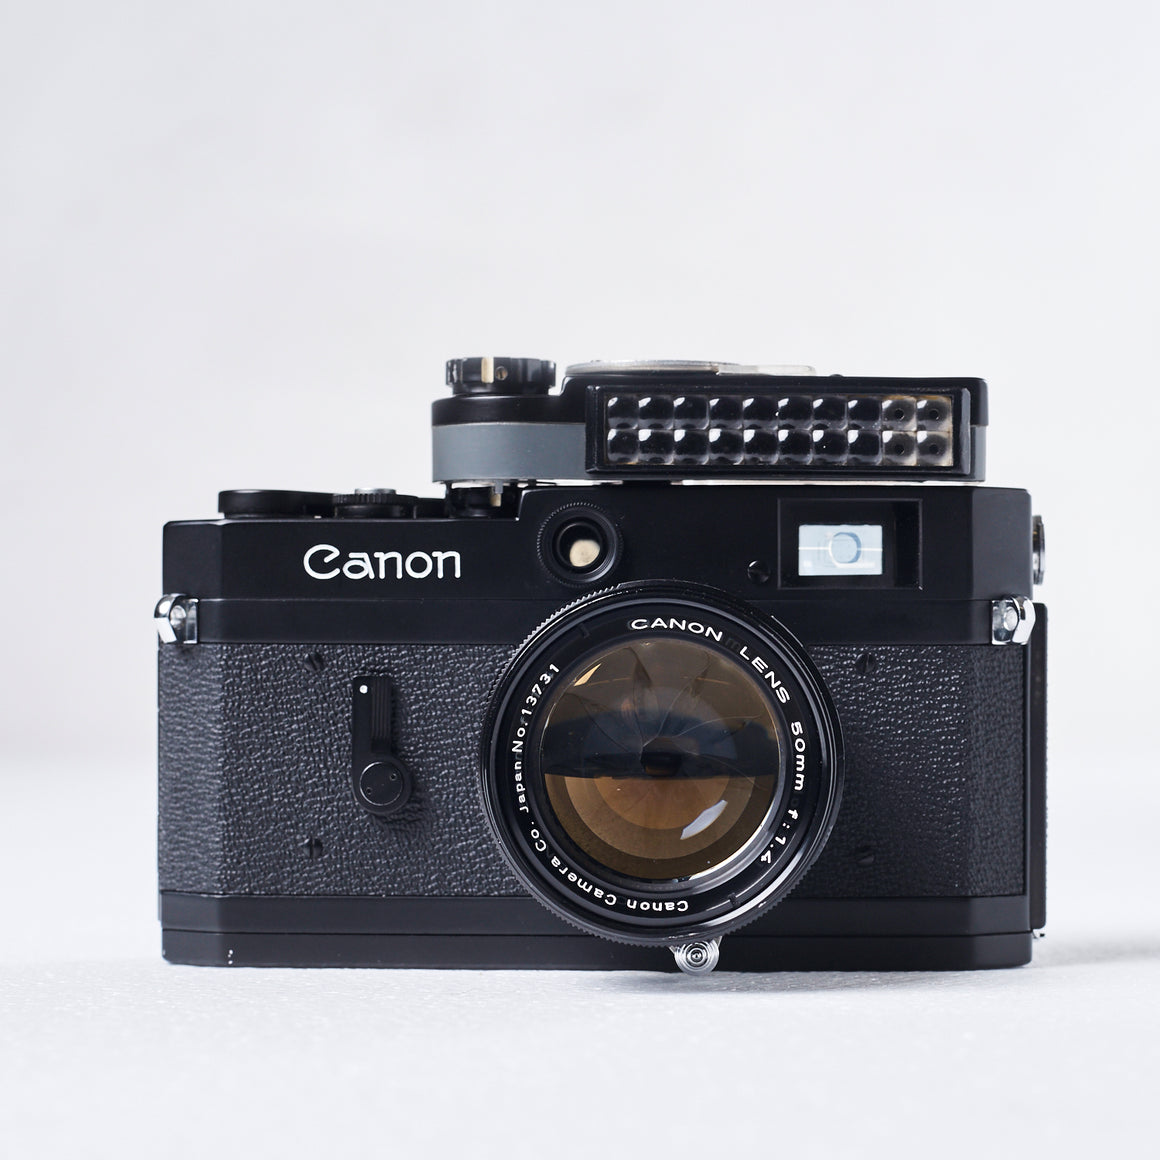 Black (Repaint) Canon P Rangefinder with Black Canon 50mm f1.4 LTM, Canon Meter, and Case